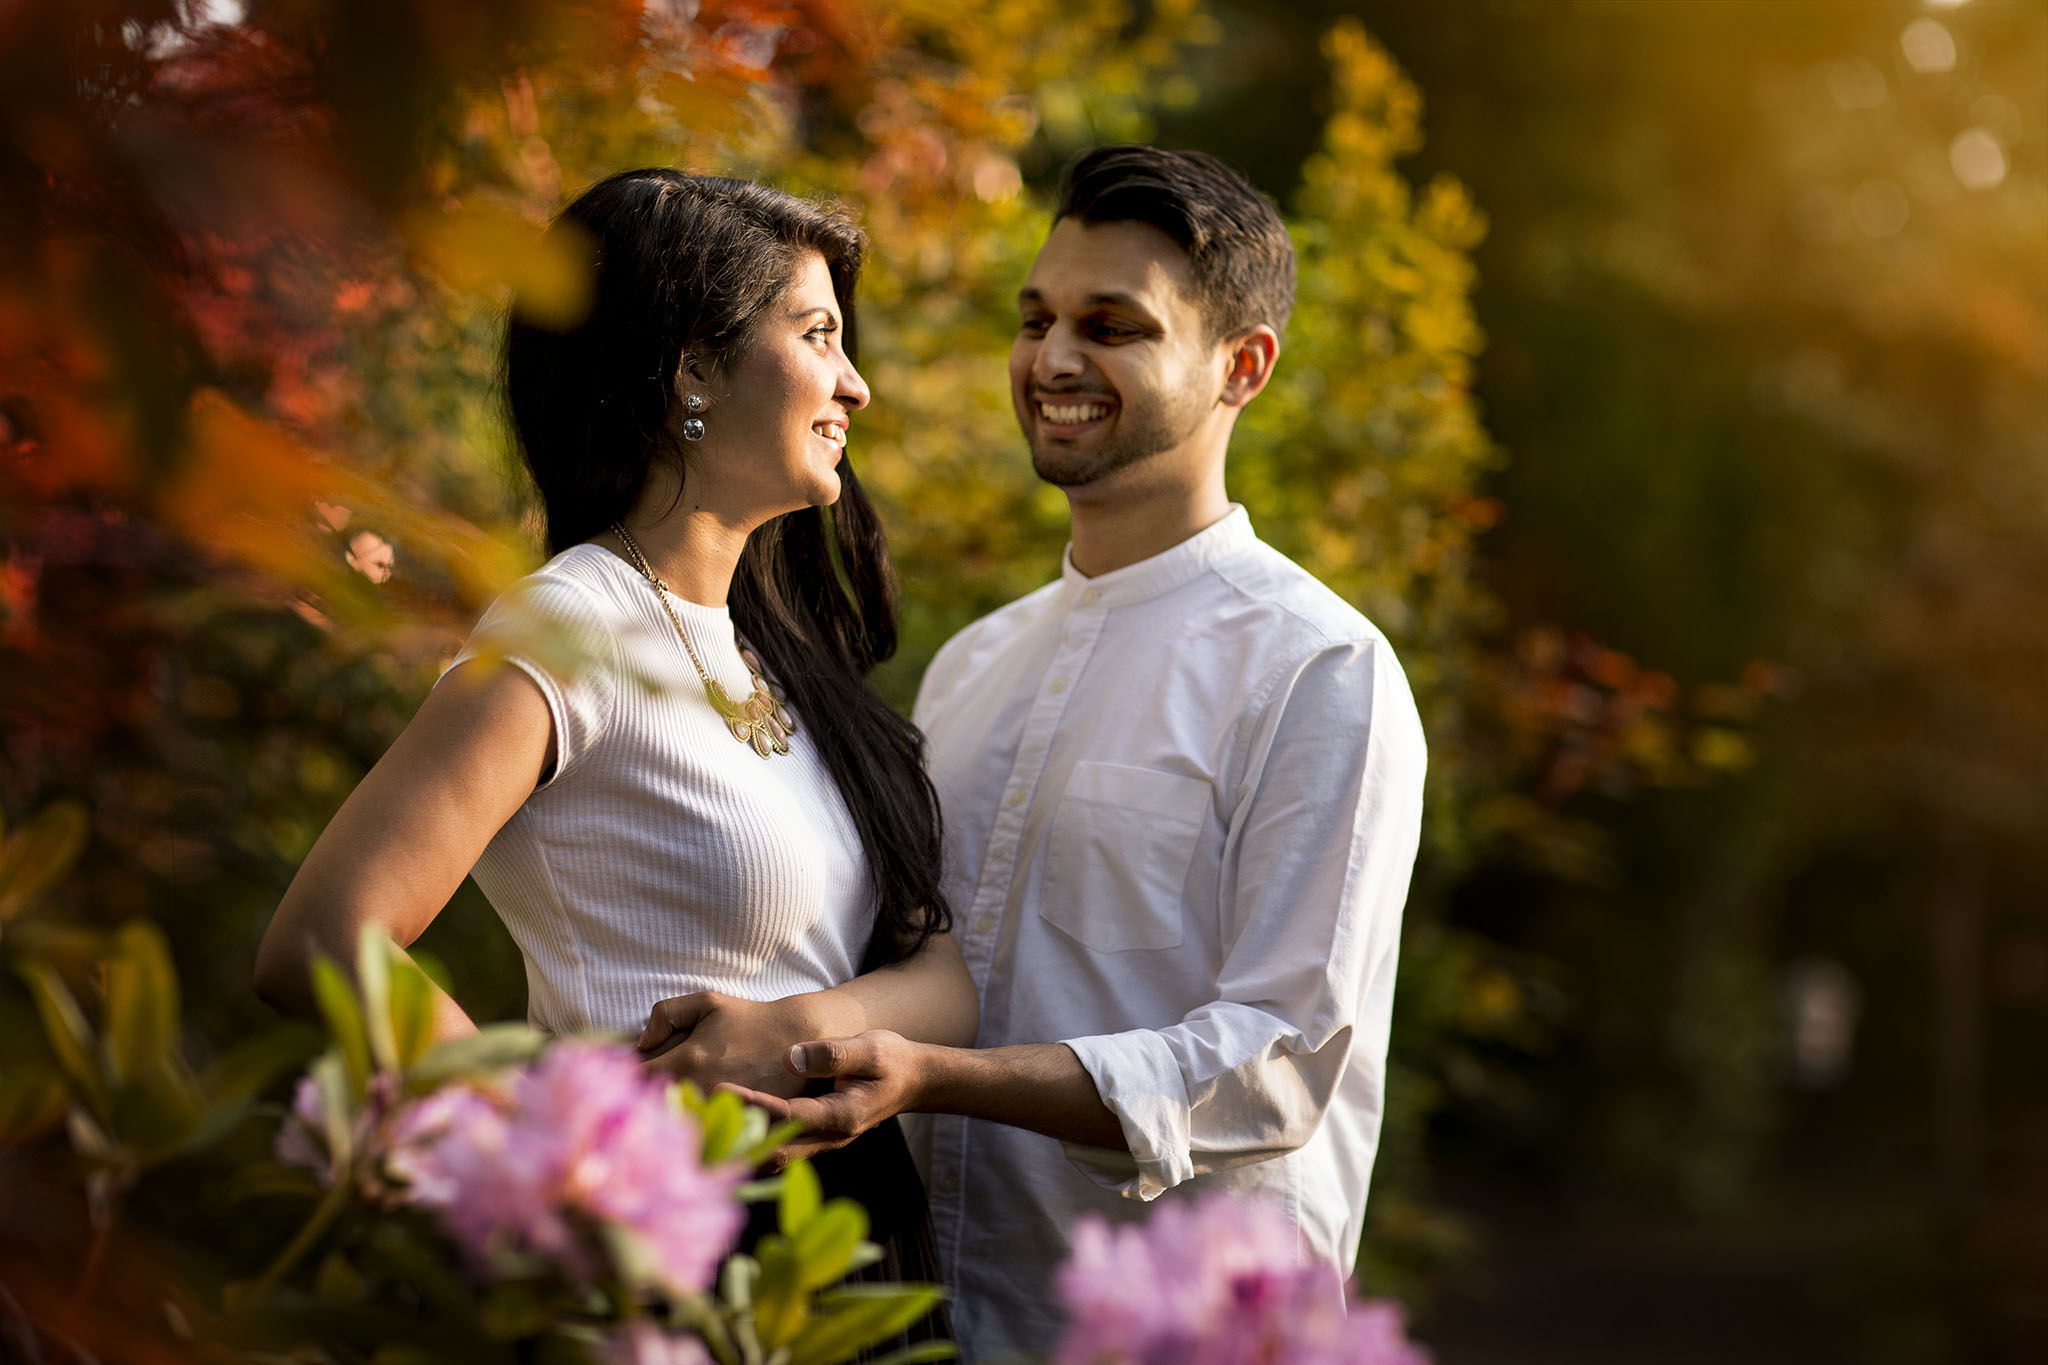 elizabethgphotography_kingslangley_hertfordshire_fineart_indian_pre-wedding_photography_jigna_bhuja_03.jpg